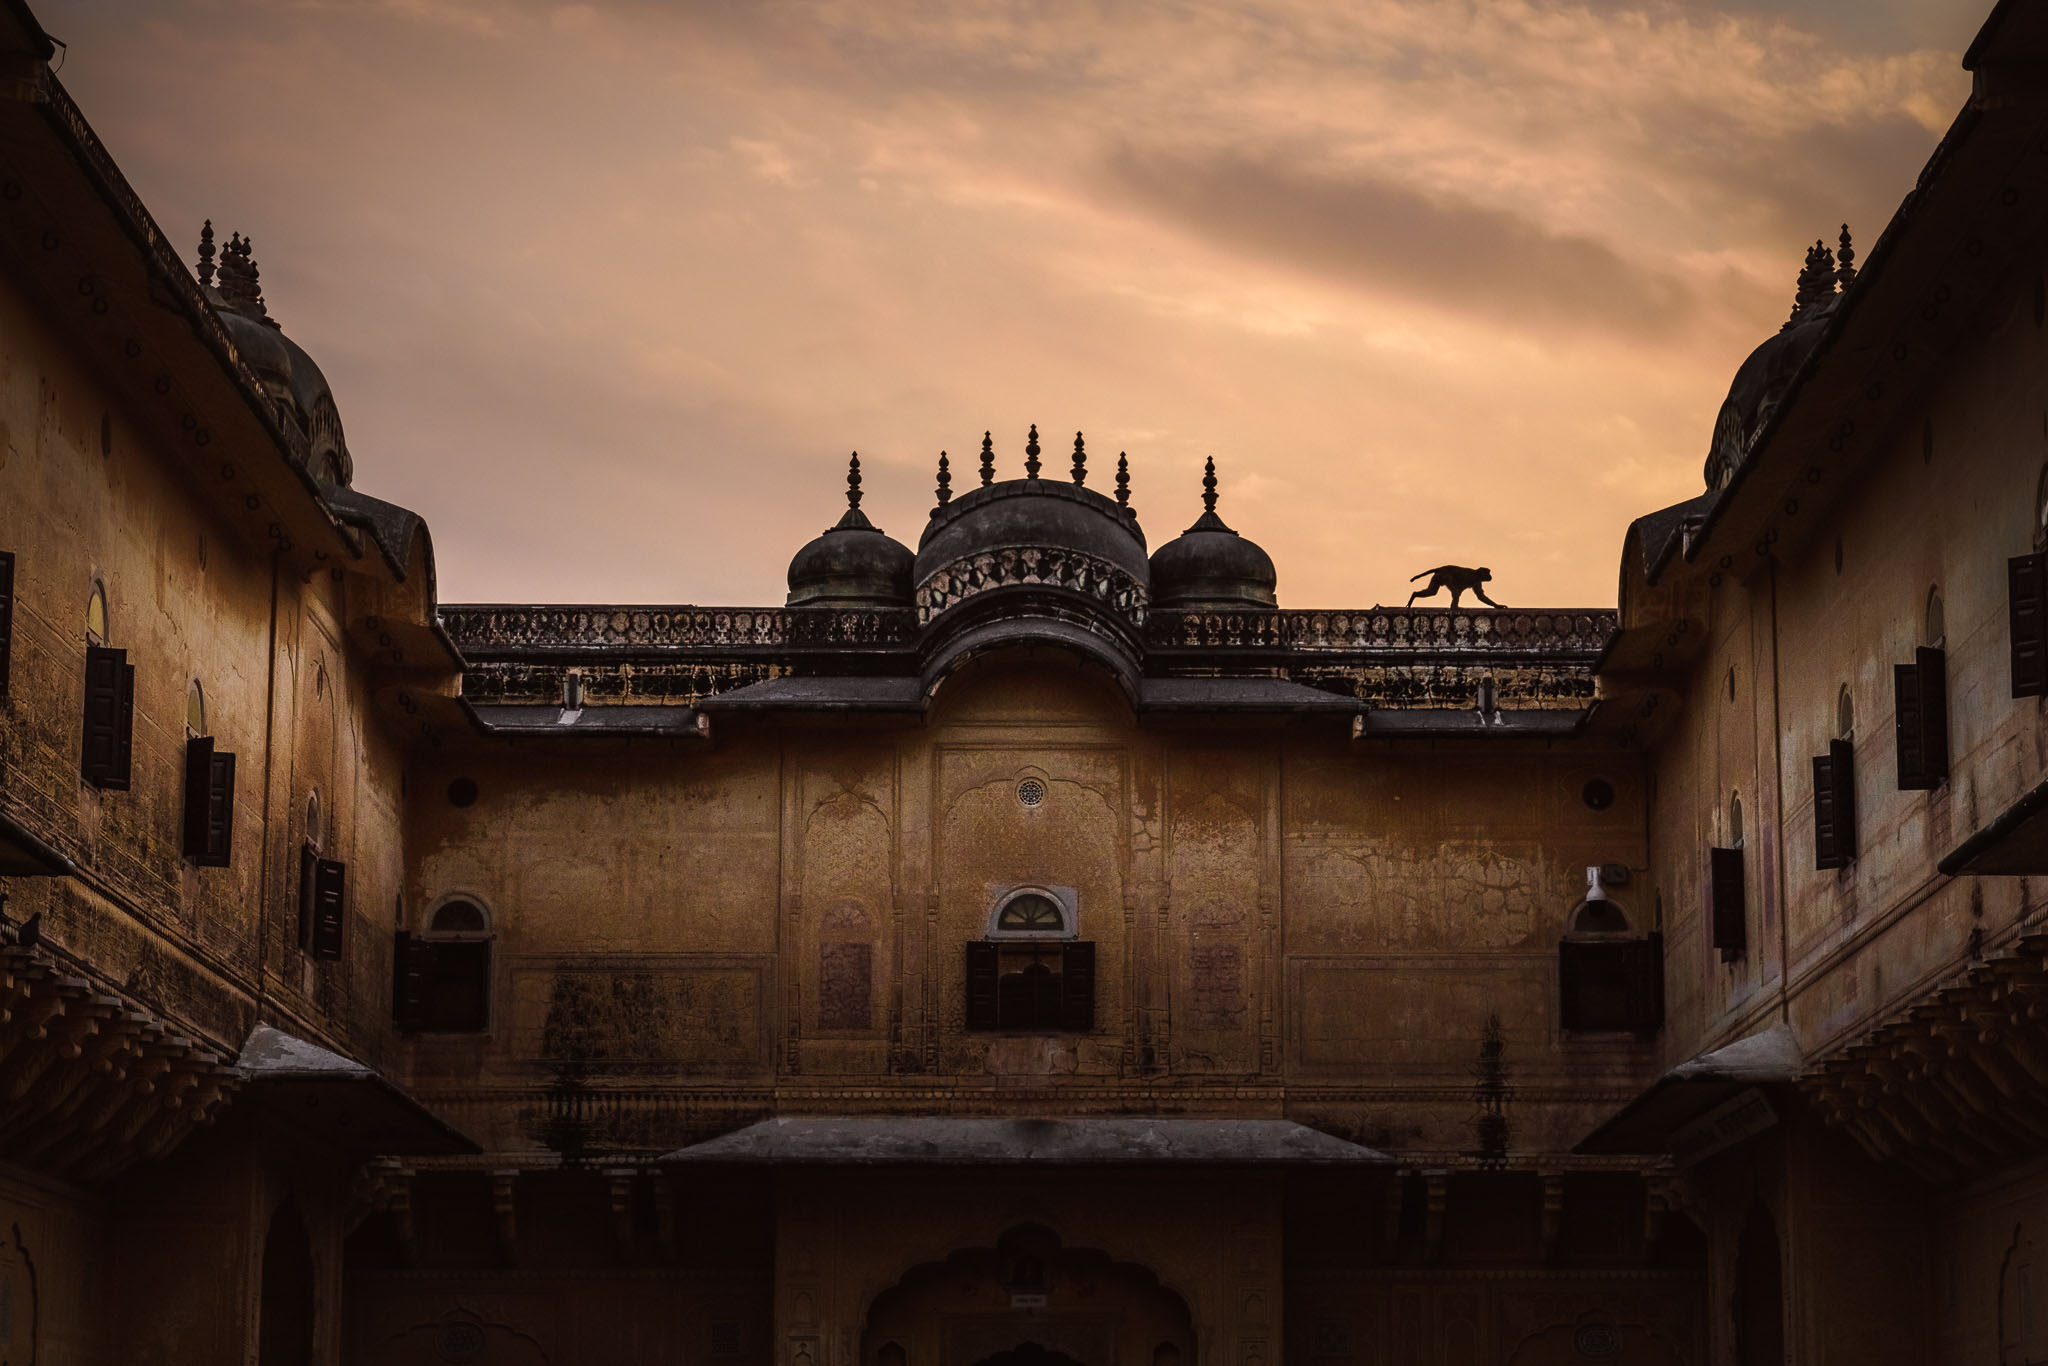 the monkeys of nahargah fort - Jaipur, IndiaHigh above the Pink city sits Jaipur's nahargarh fort, the 'Abode of tigers'. But its roofs and walls are a playground for something a bit smaller than its namesake.